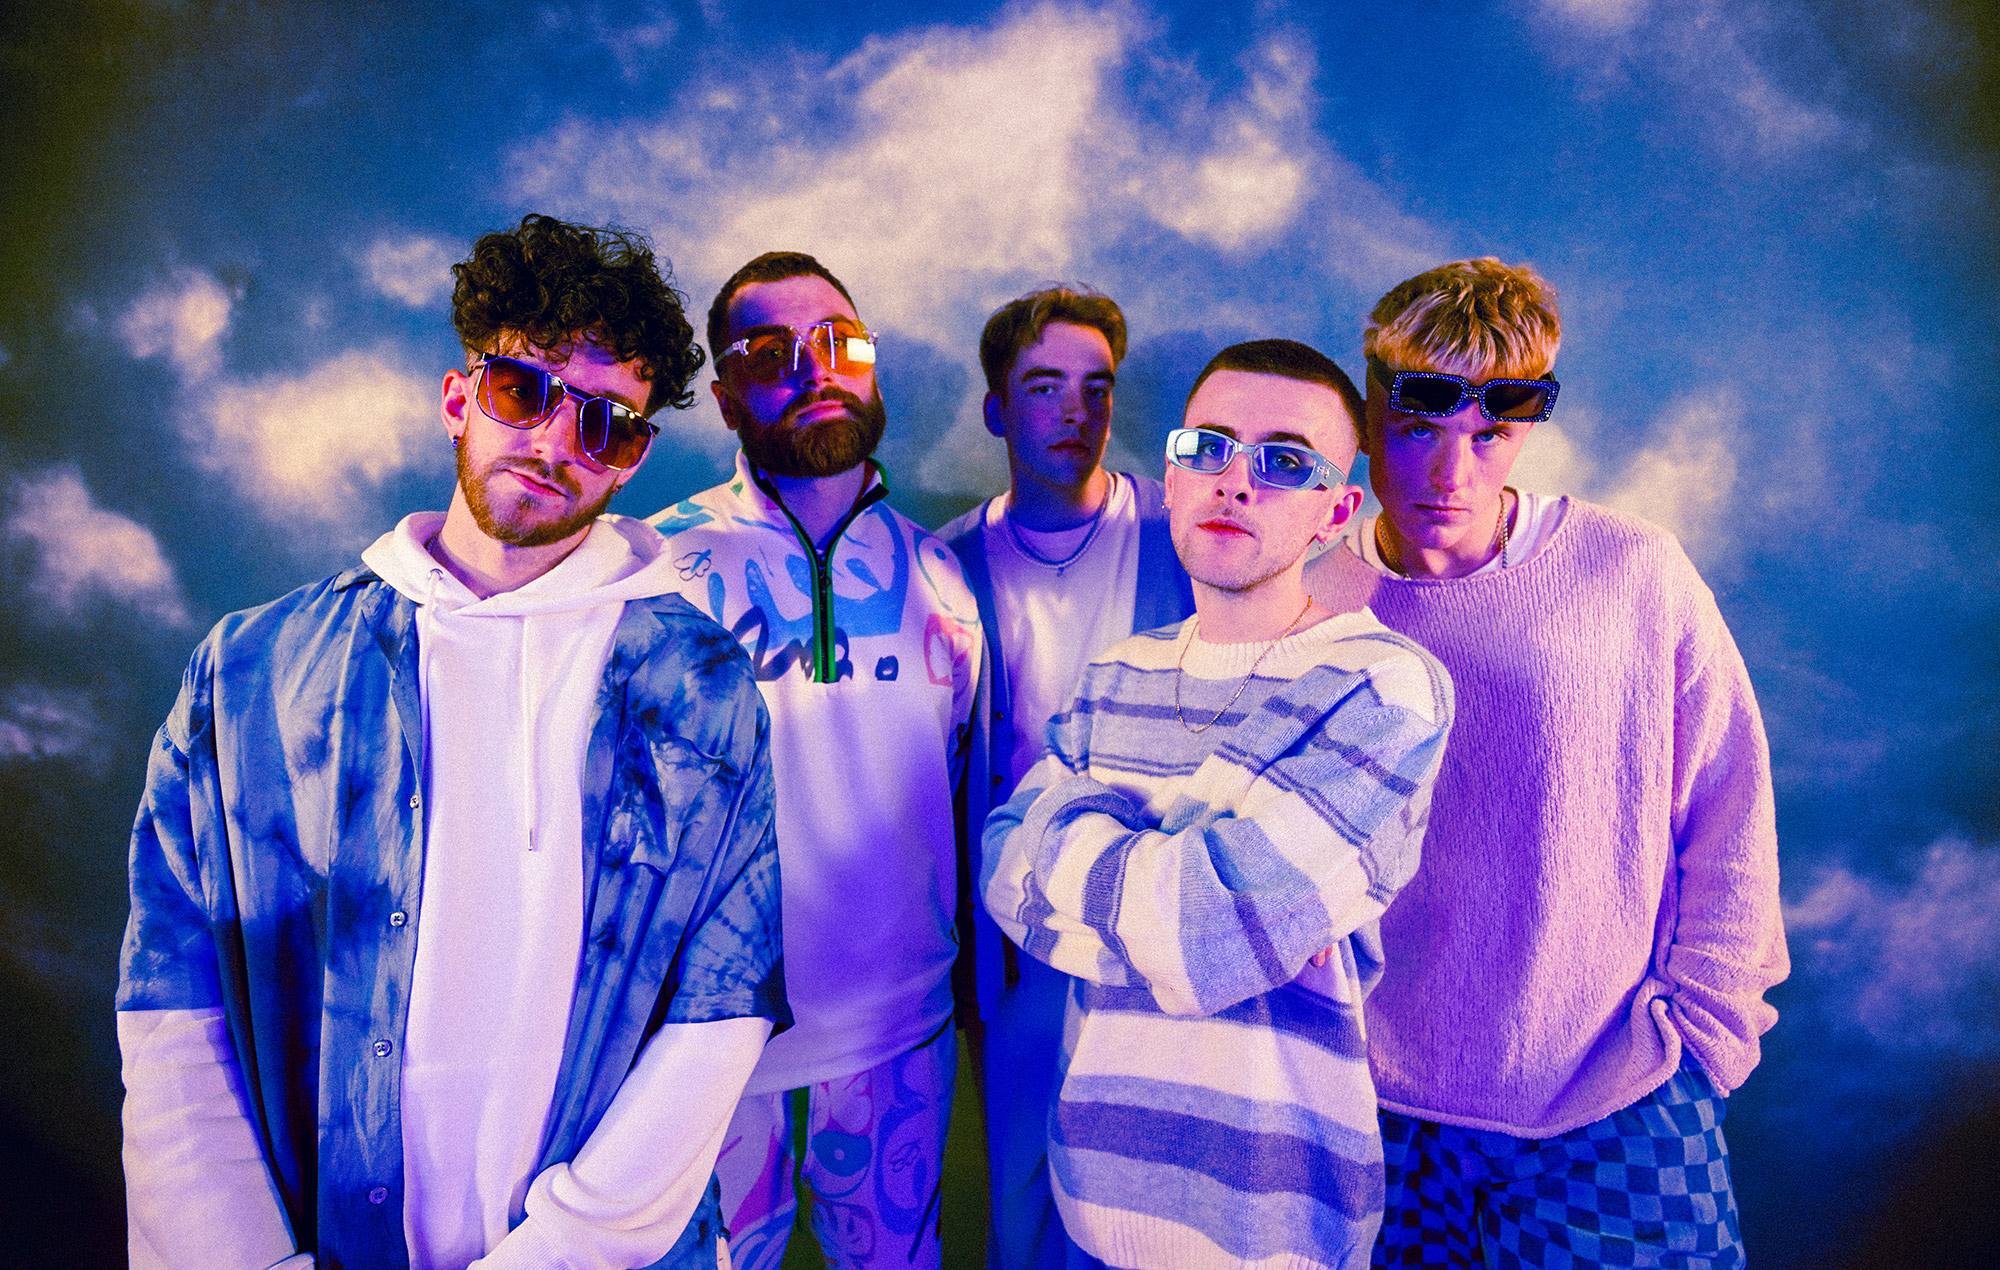 Goldfish, hoverboards, cloud-surfing cherubs: what to expect from Easy Life's O2 Arena gig in 'Fortnite'